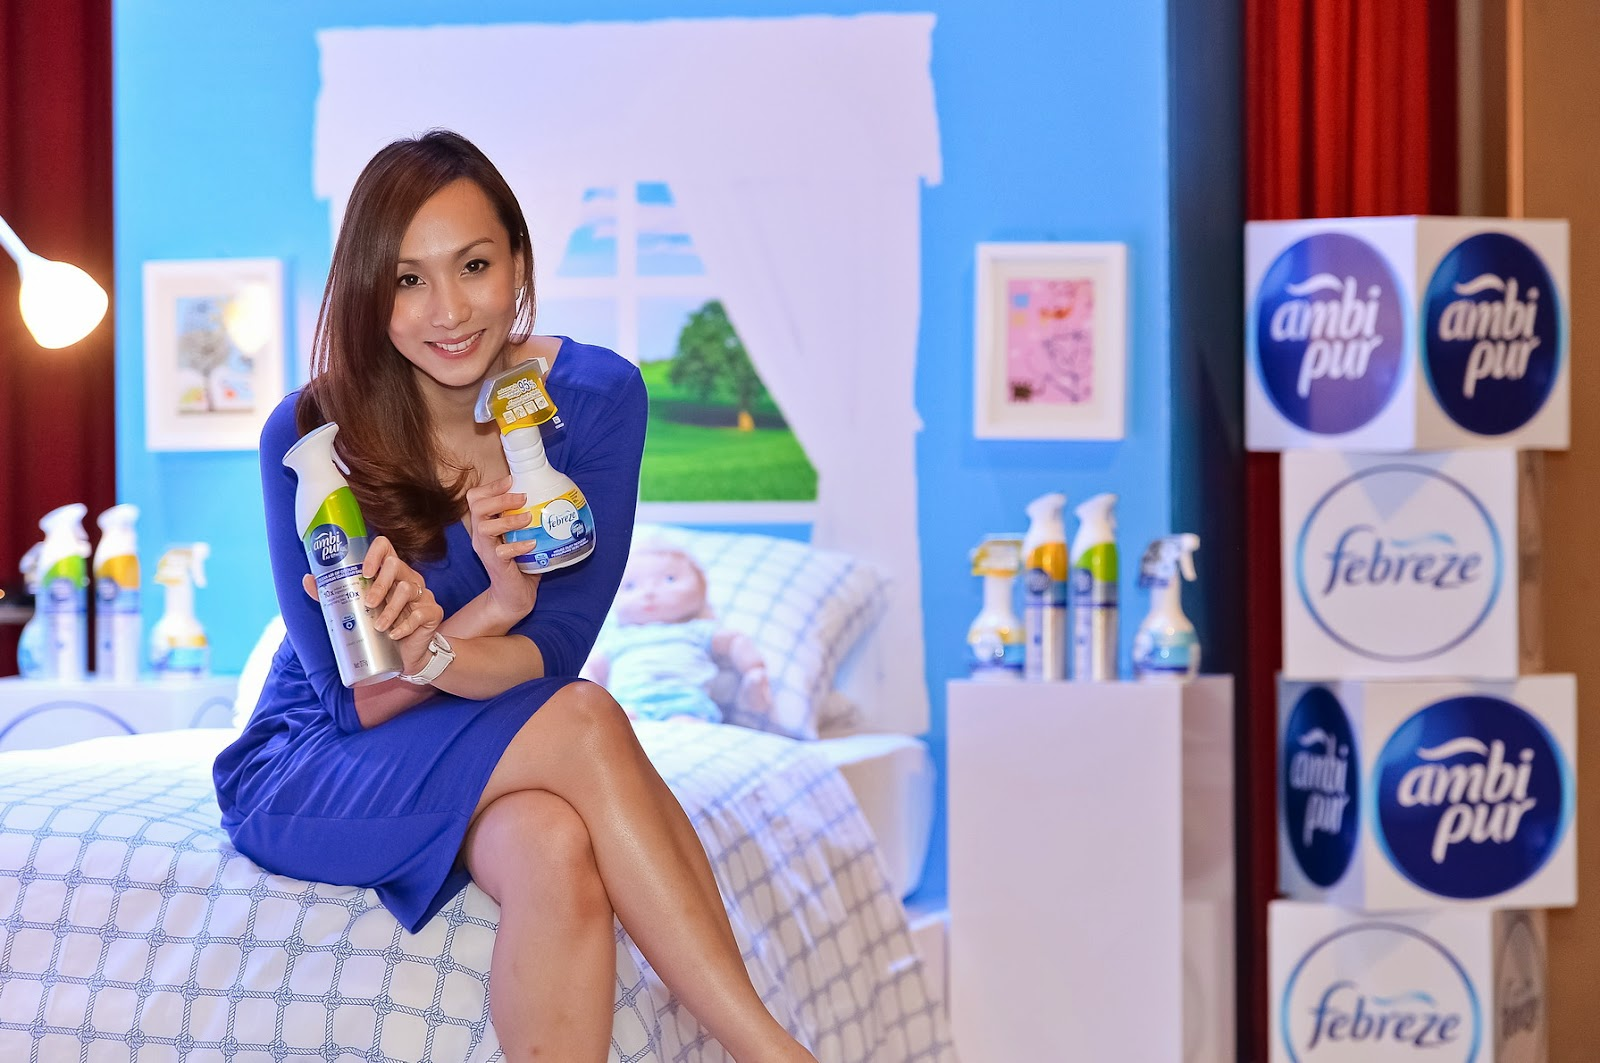 woman posing with dust reducer product on bed